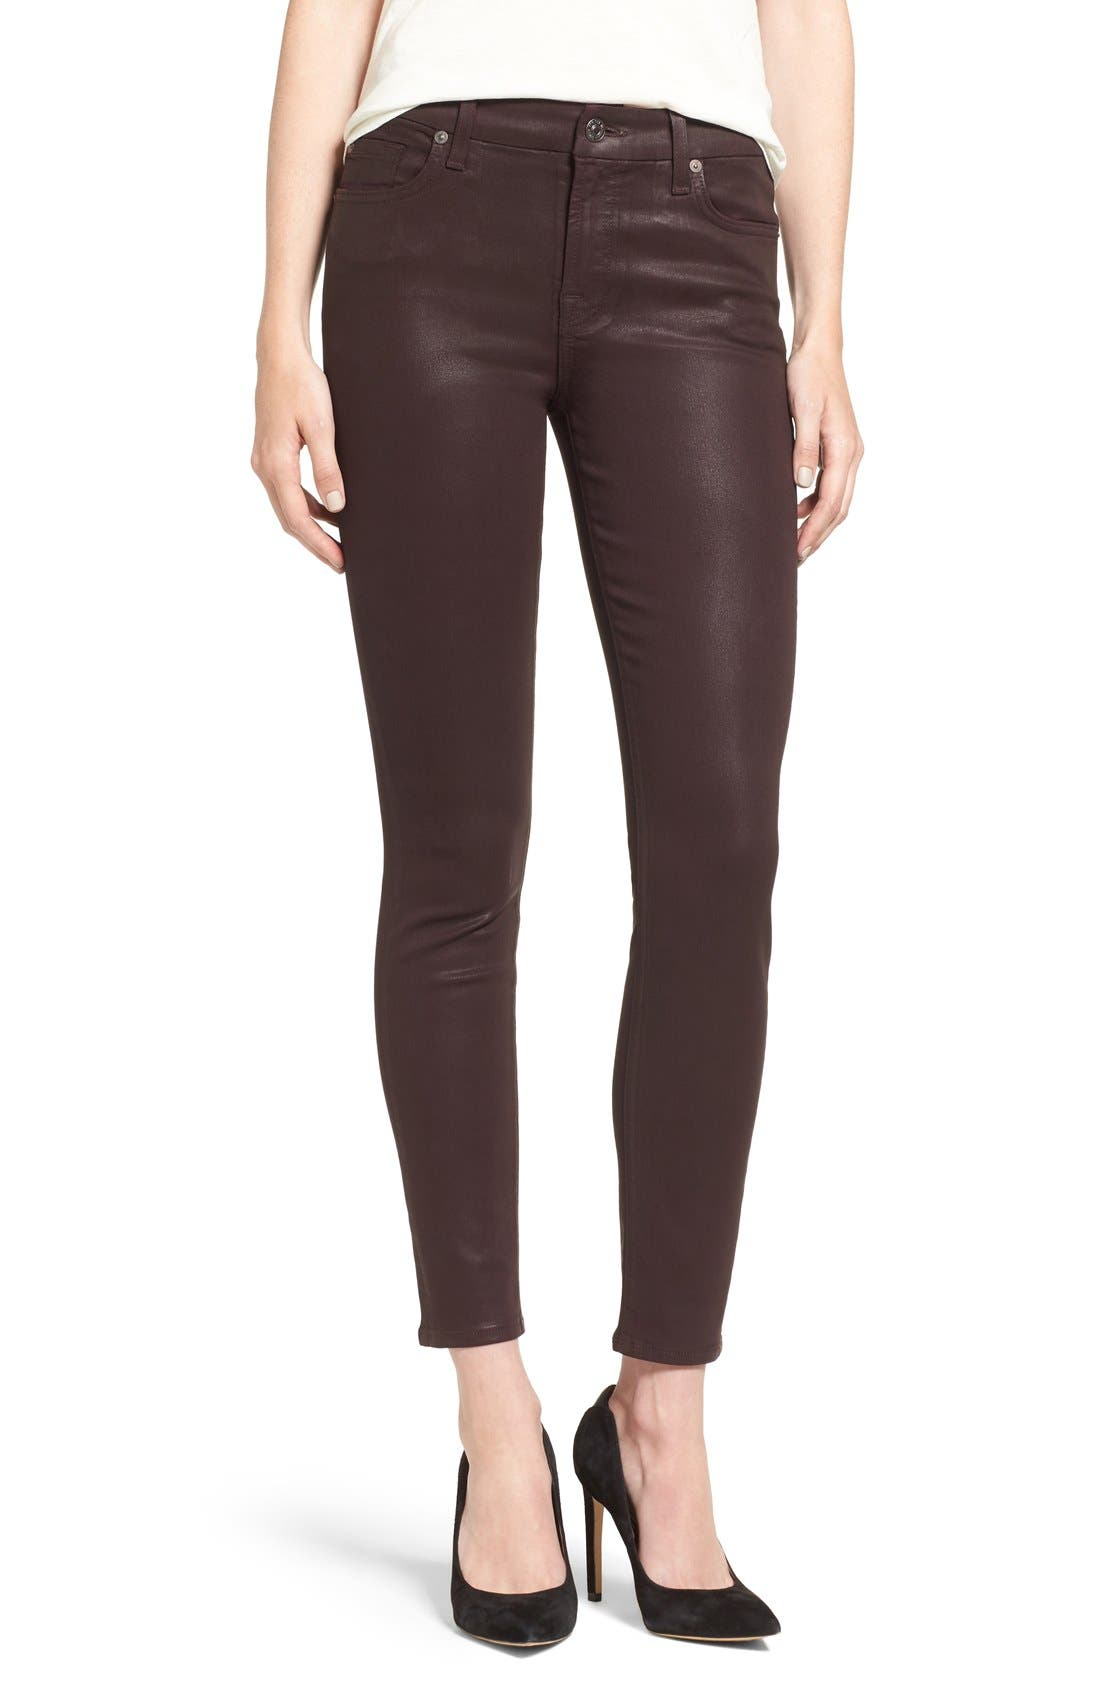 Alternate Image 1 Selected - 7 For All Mankind® Coated Ankle Skinny Jeans (Plum Coated)